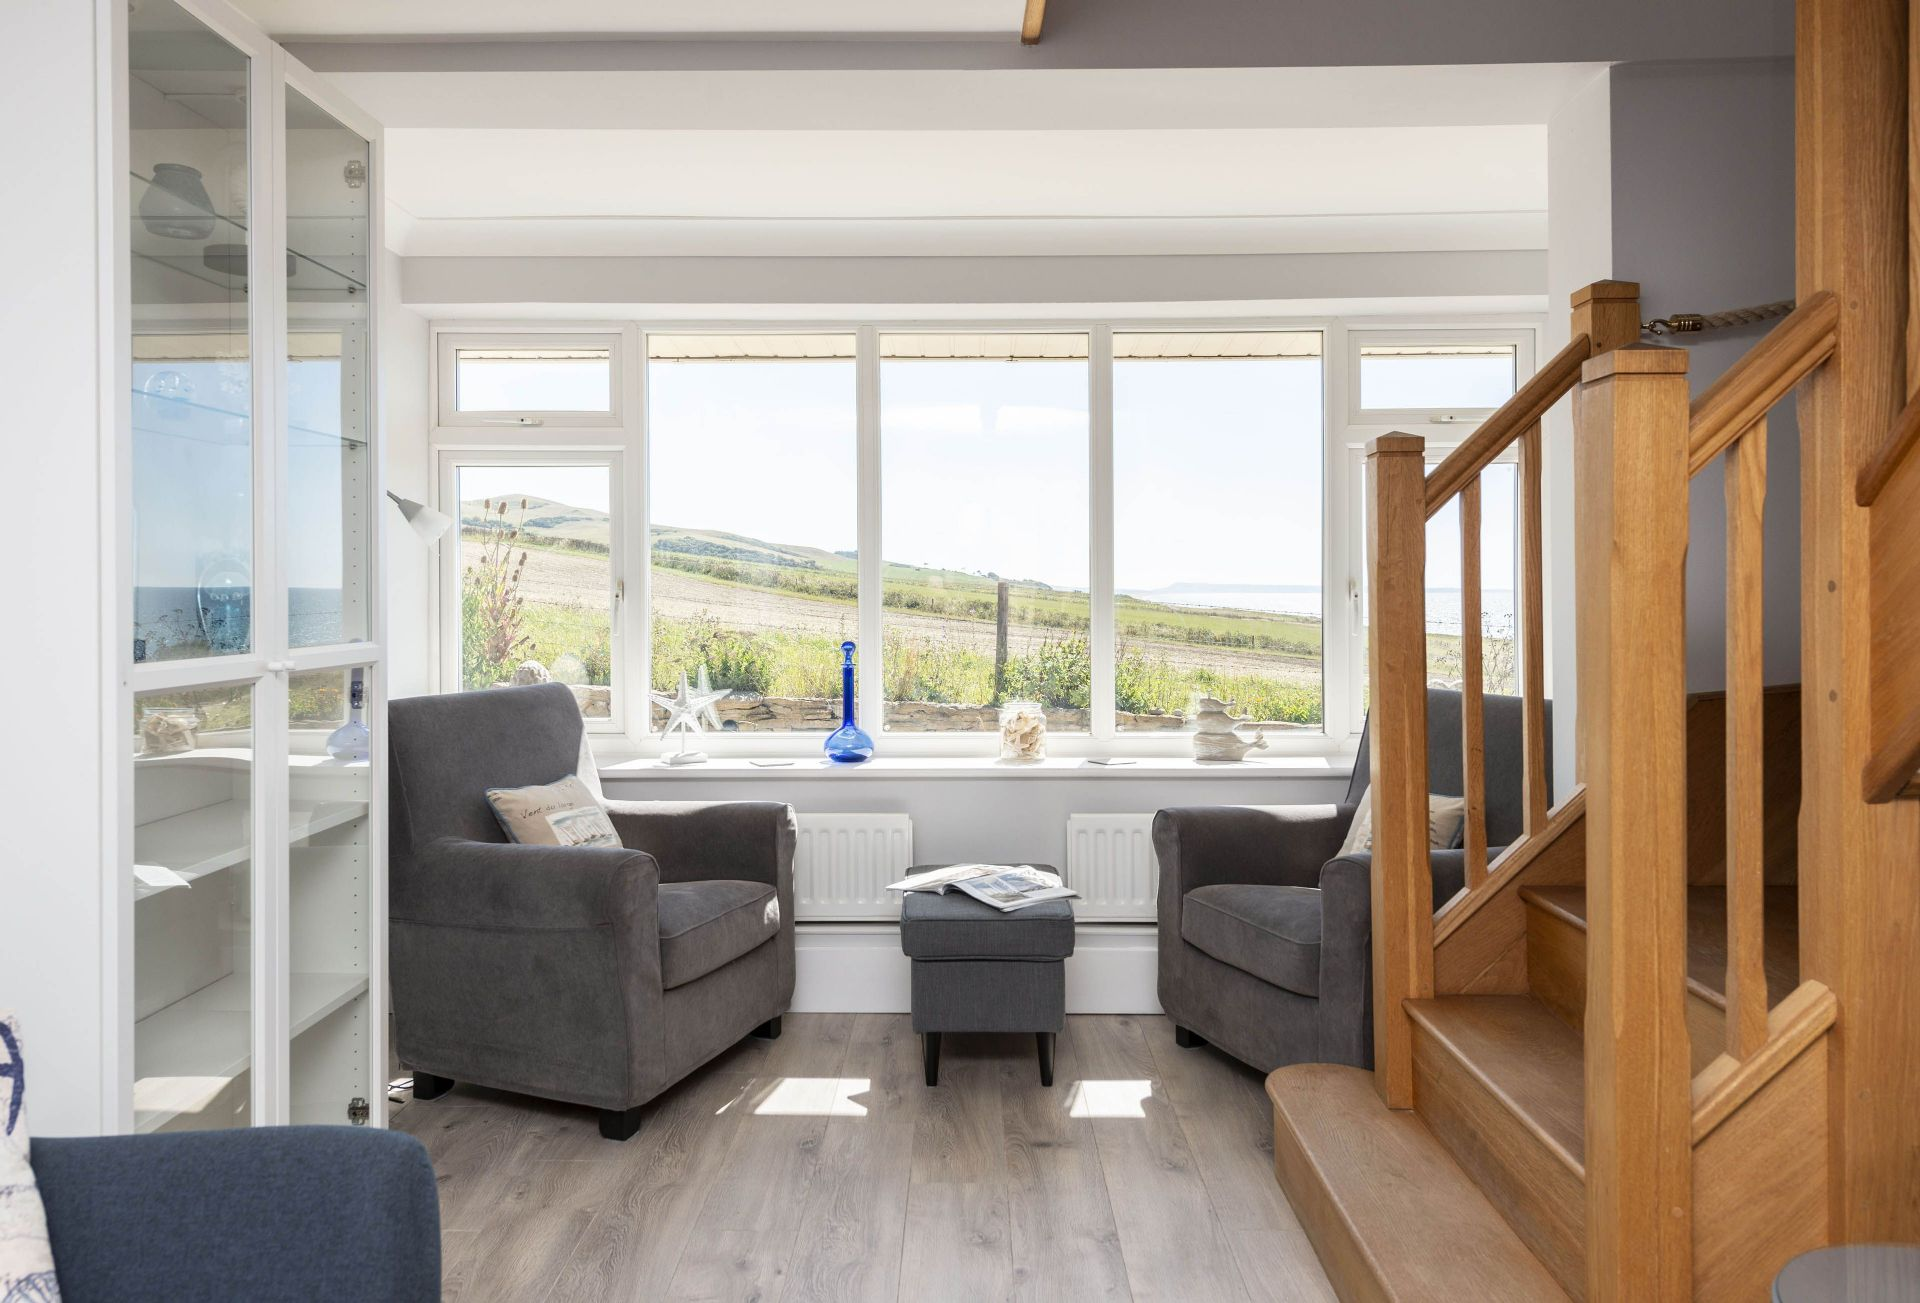 More information about Chesil Watch - ideal for a family holiday